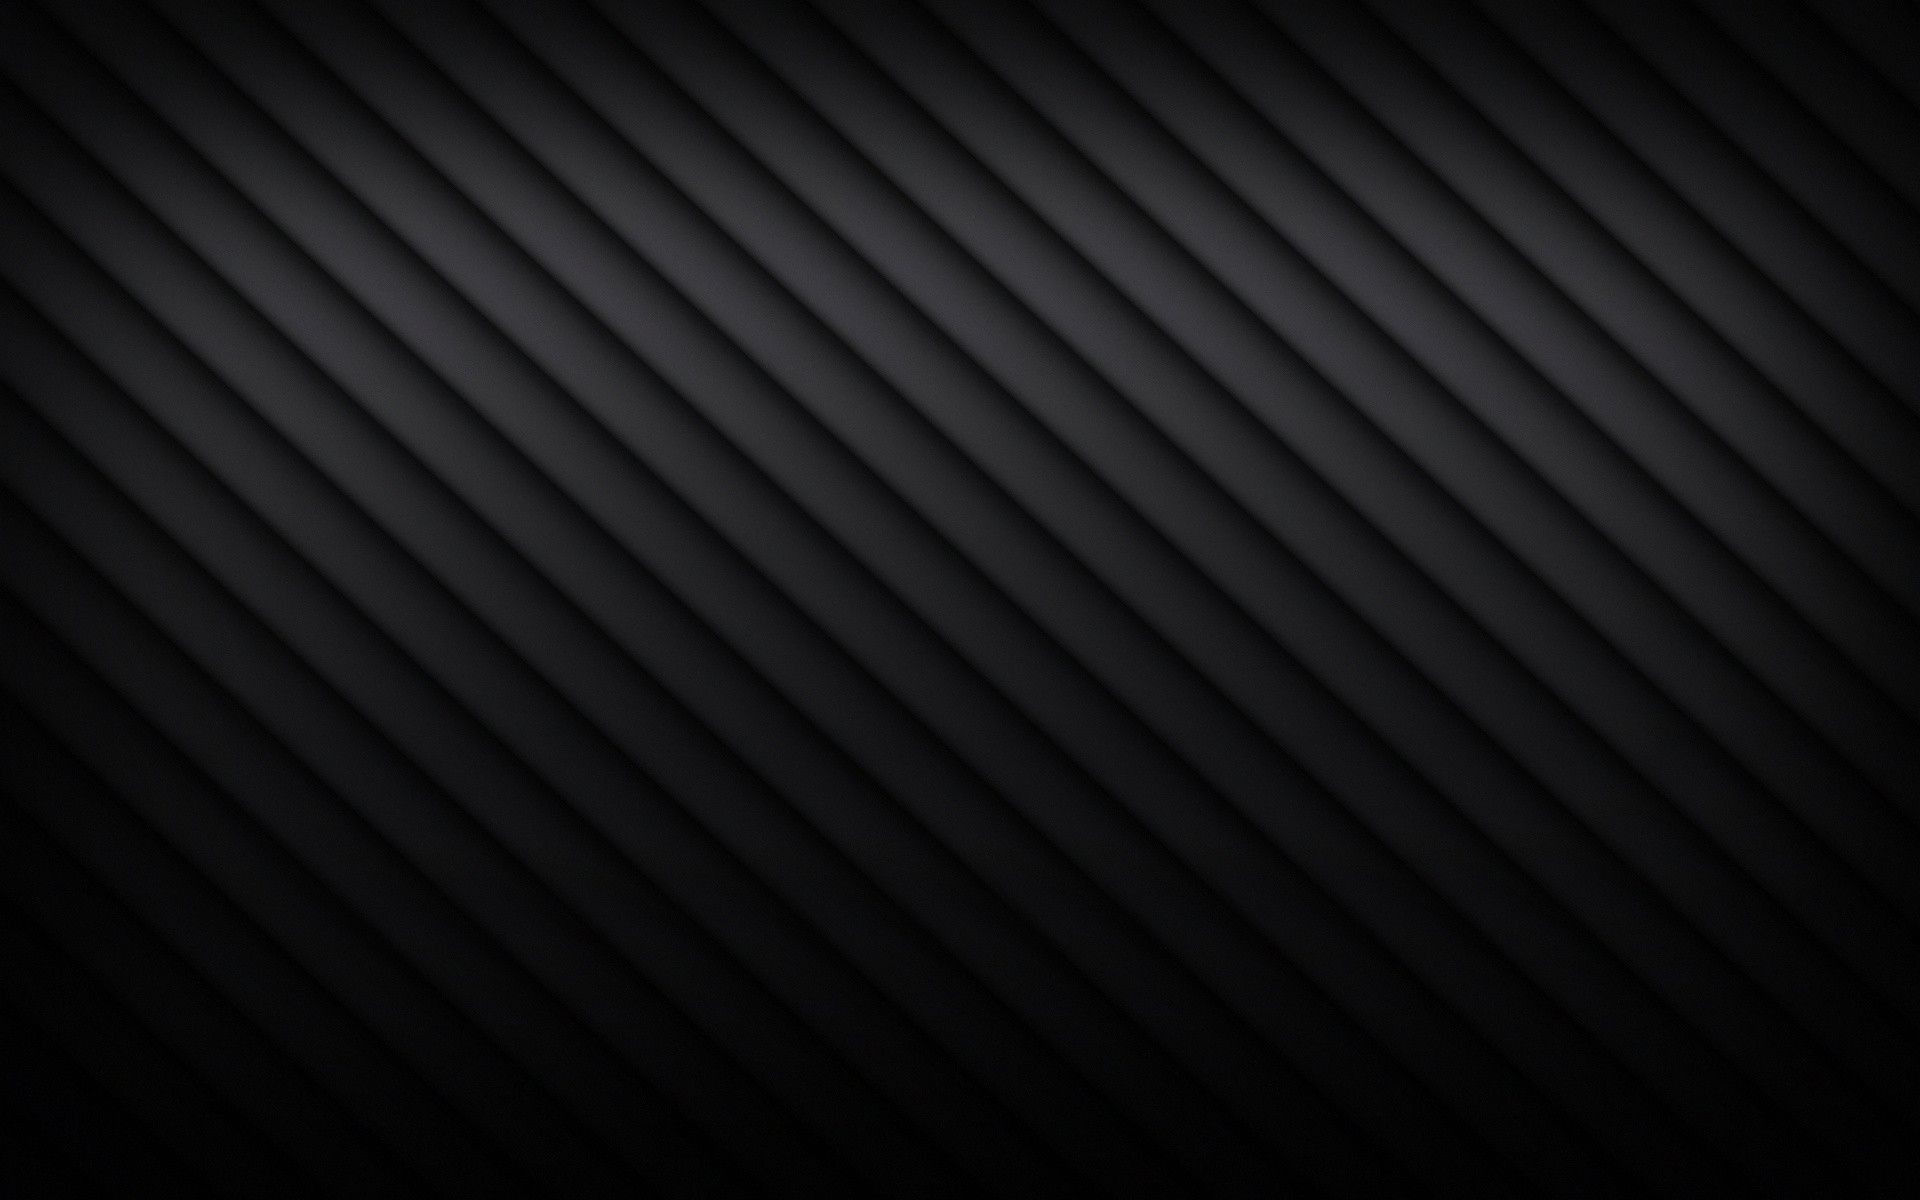 abstract black background hd line images